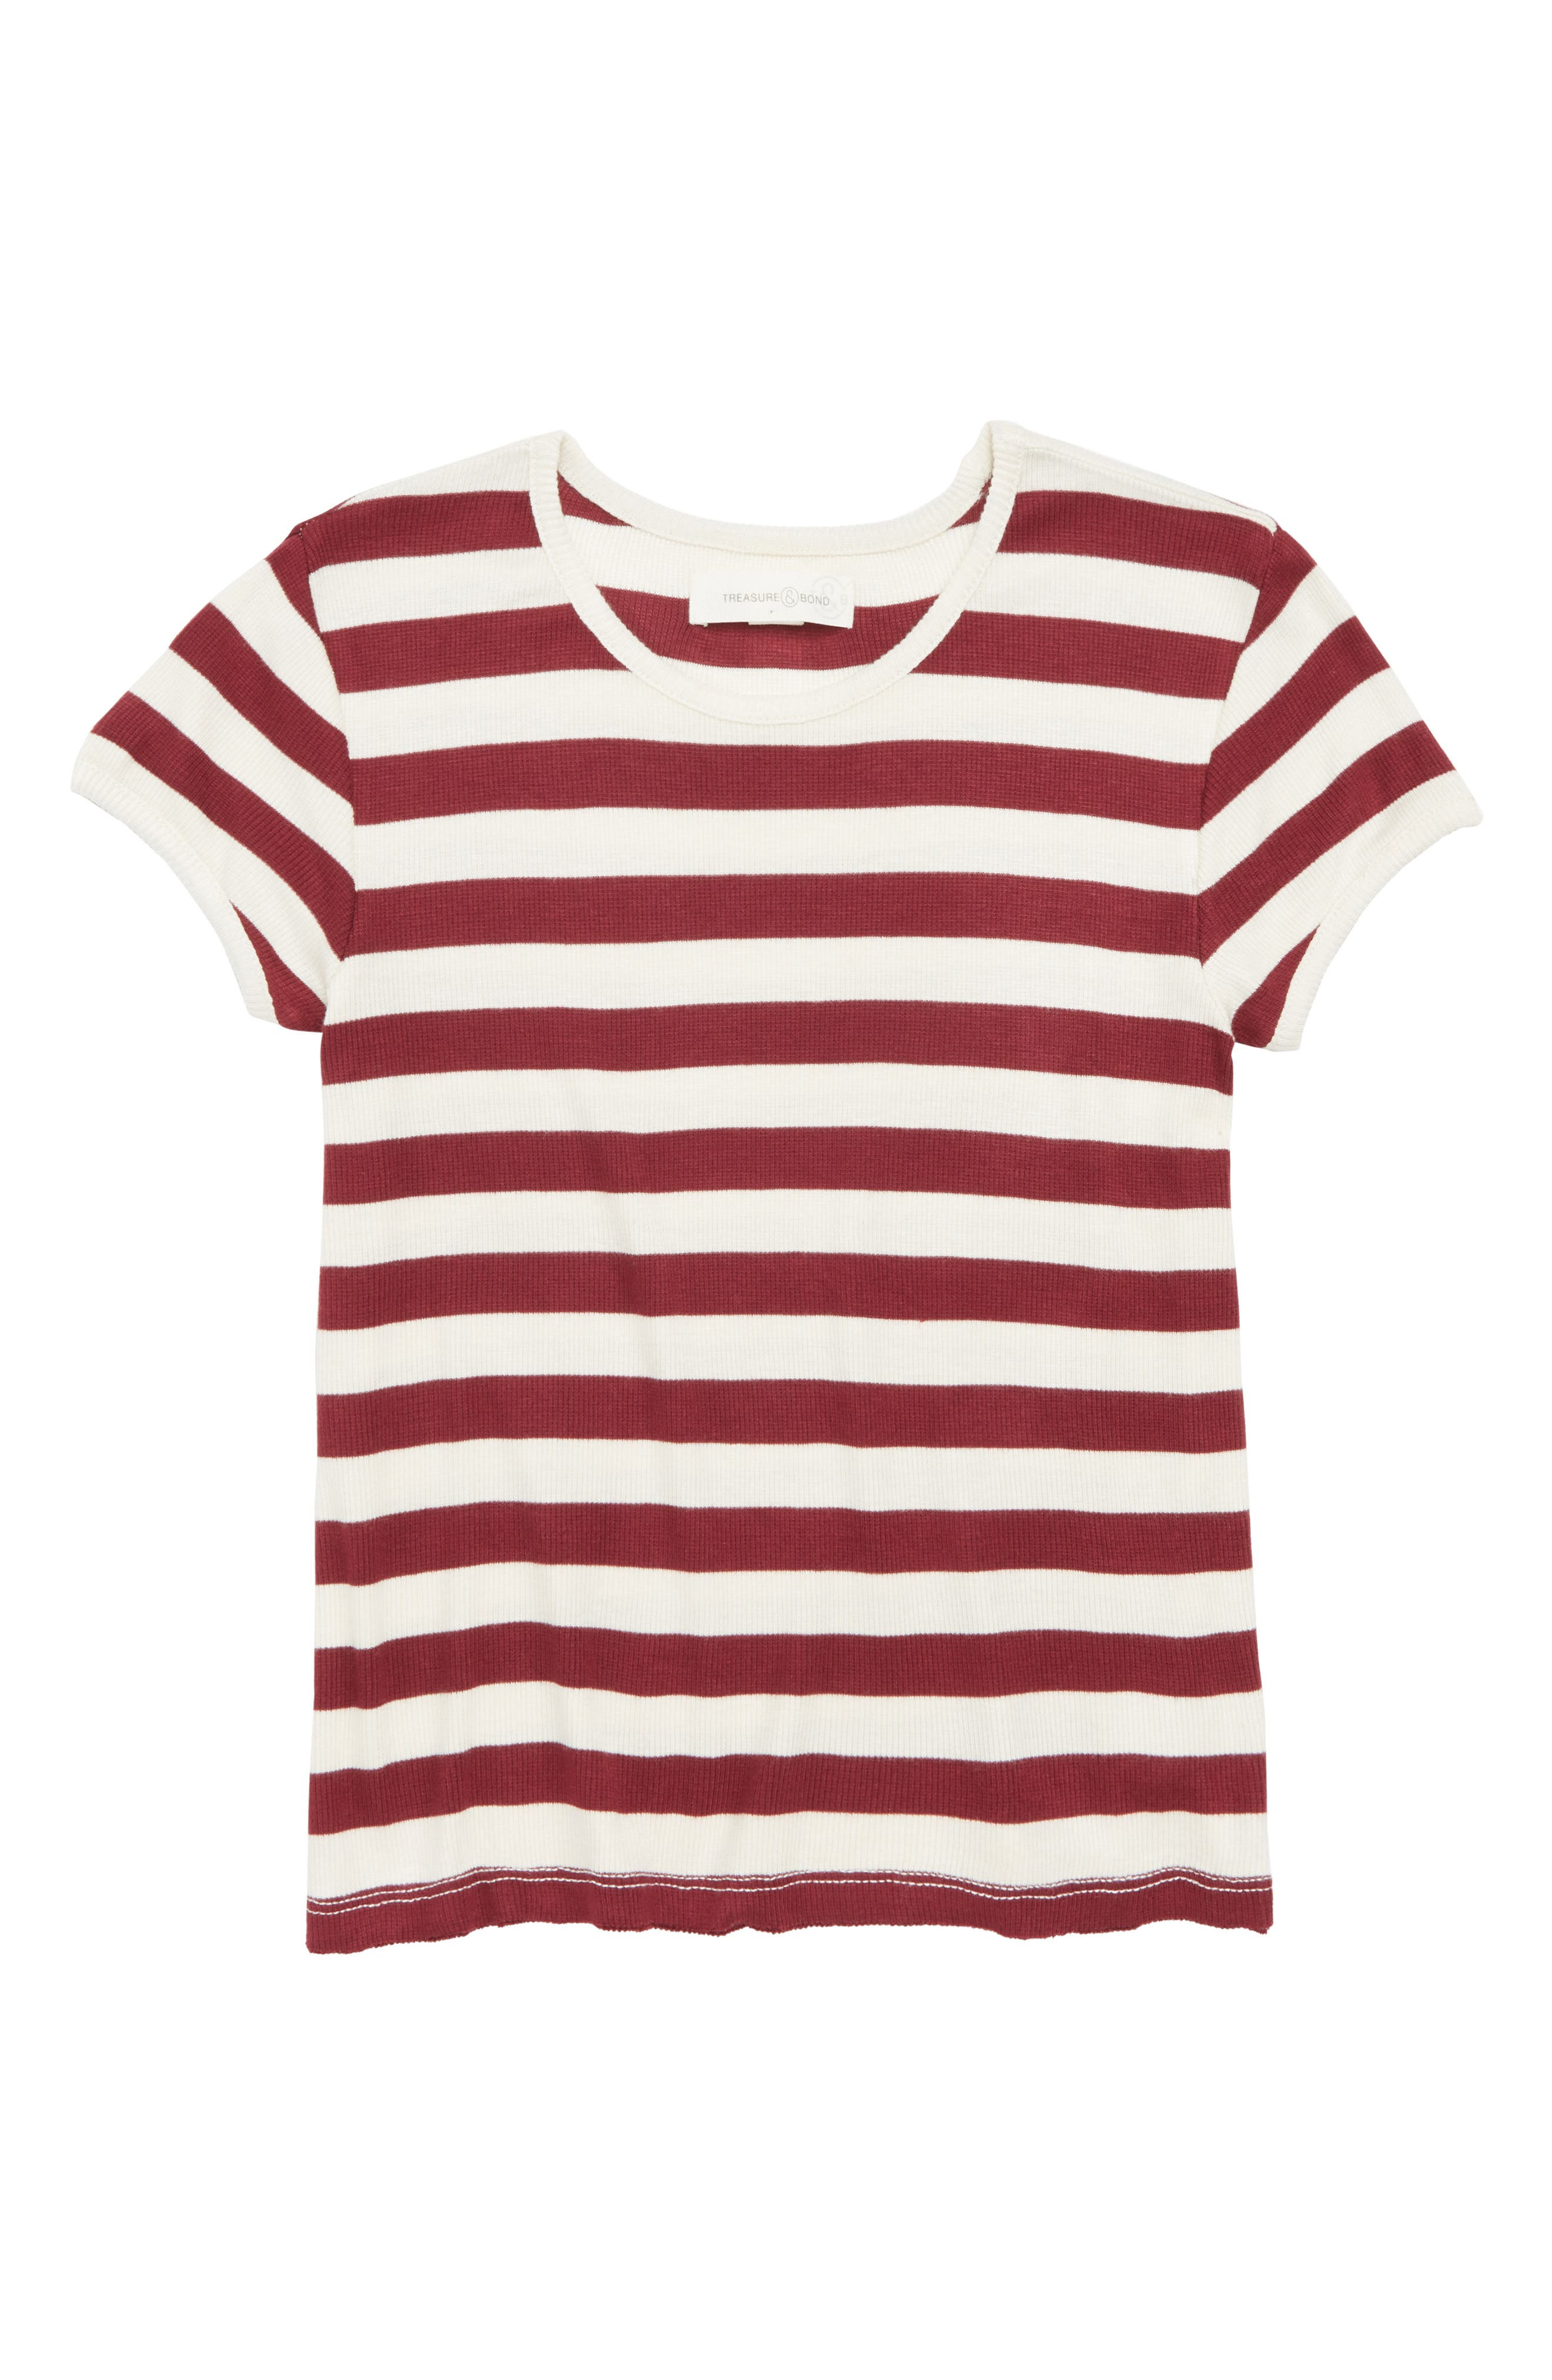 Stripe Knit Tee,                         Main,                         color, Red Cordovan- Ivory Stripe